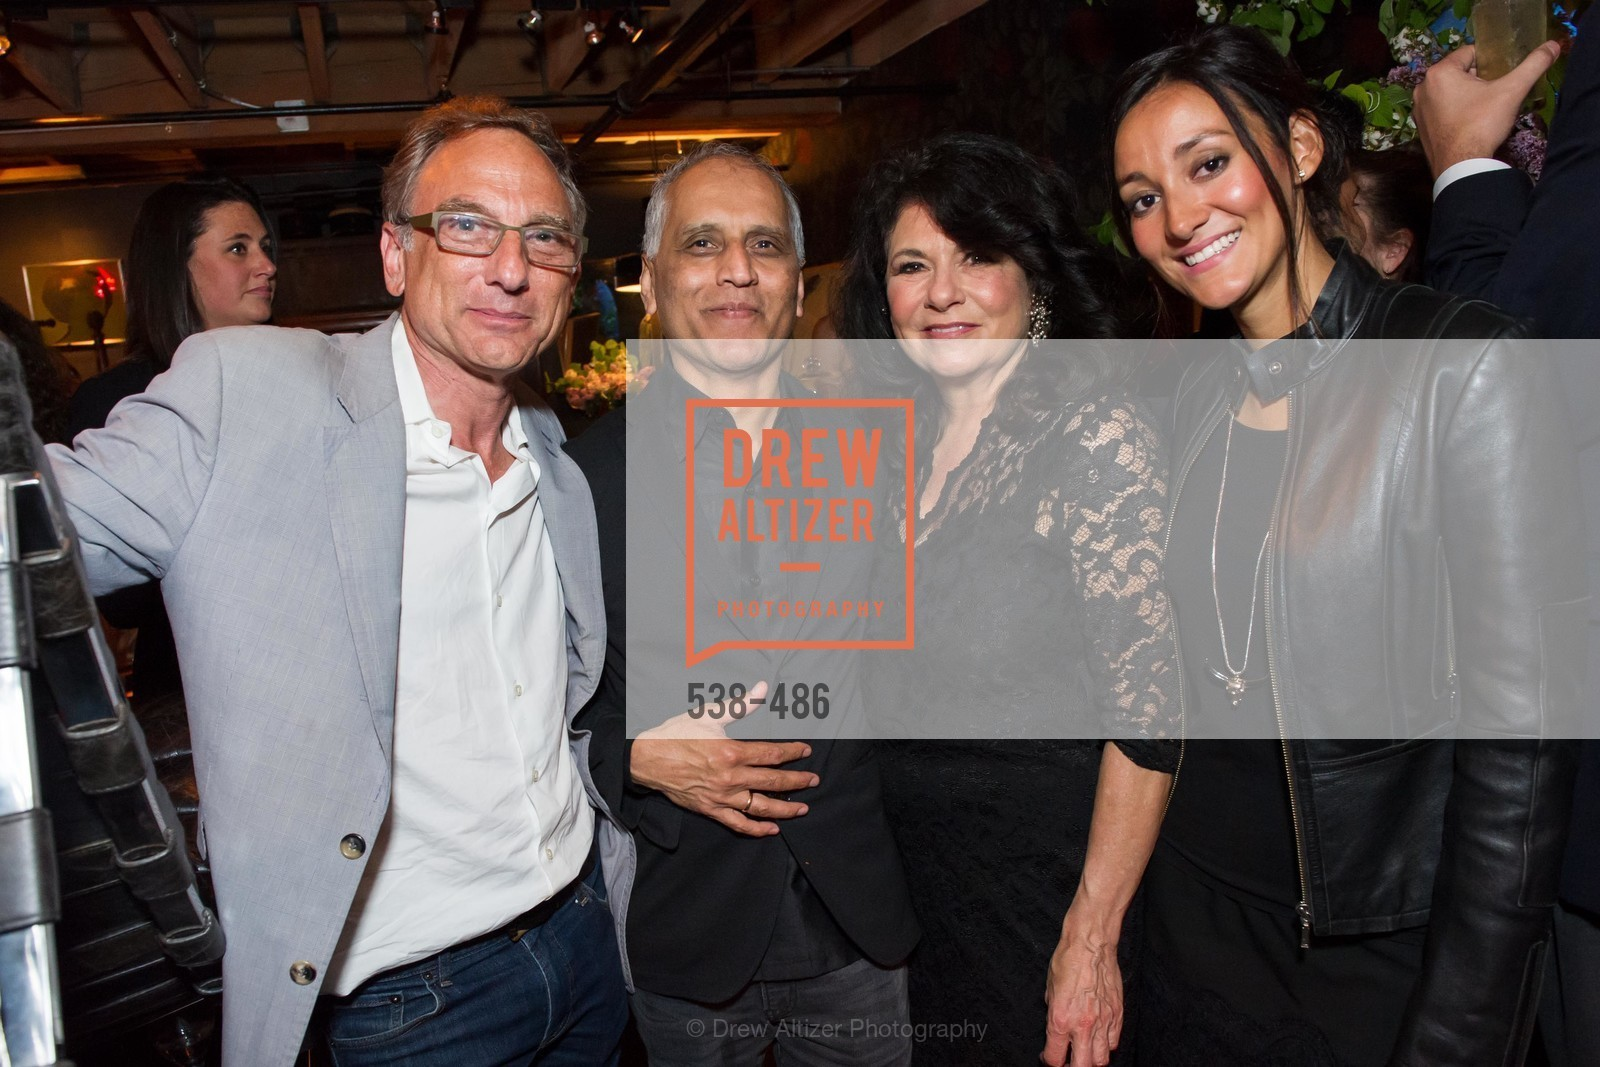 Paul Burditch, Zahid Sardar, Andrea Barlow, KEN FULK Presents All Fools Day, US. US, April 1st, 2014,Drew Altizer, Drew Altizer Photography, full-service agency, private events, San Francisco photographer, photographer california